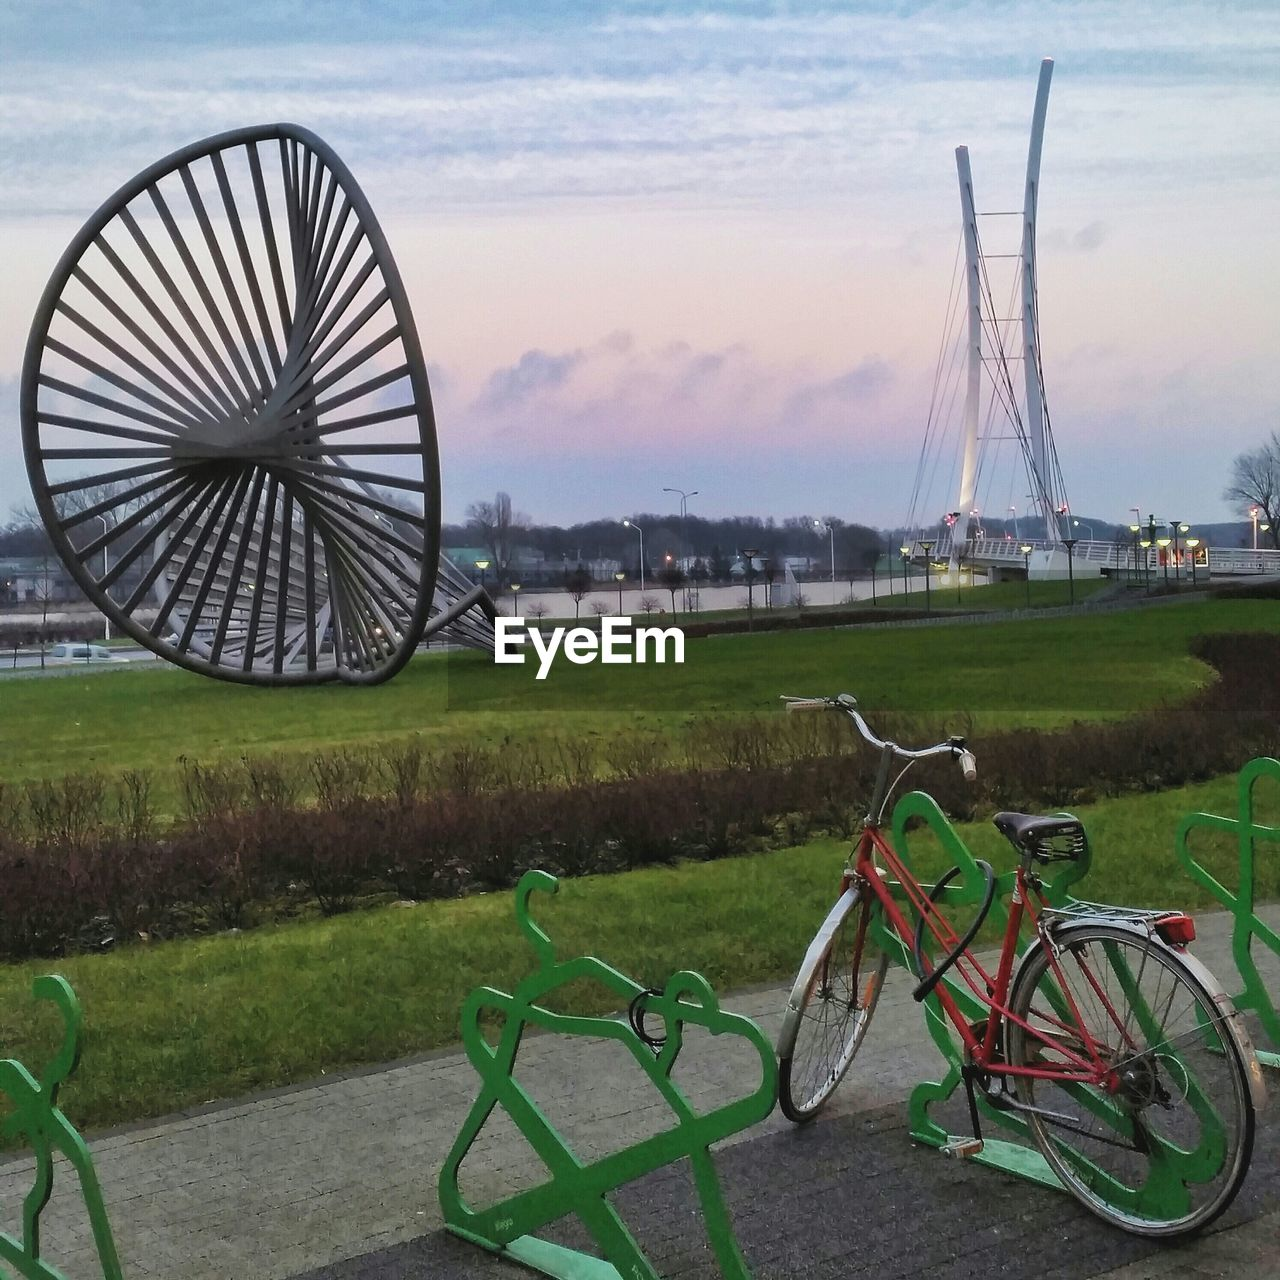 grass, transportation, mode of transport, outdoors, sky, green color, no people, bicycle, day, ferris wheel, stationary, building exterior, land vehicle, architecture, nature, cloud - sky, built structure, travel destinations, water, beauty in nature